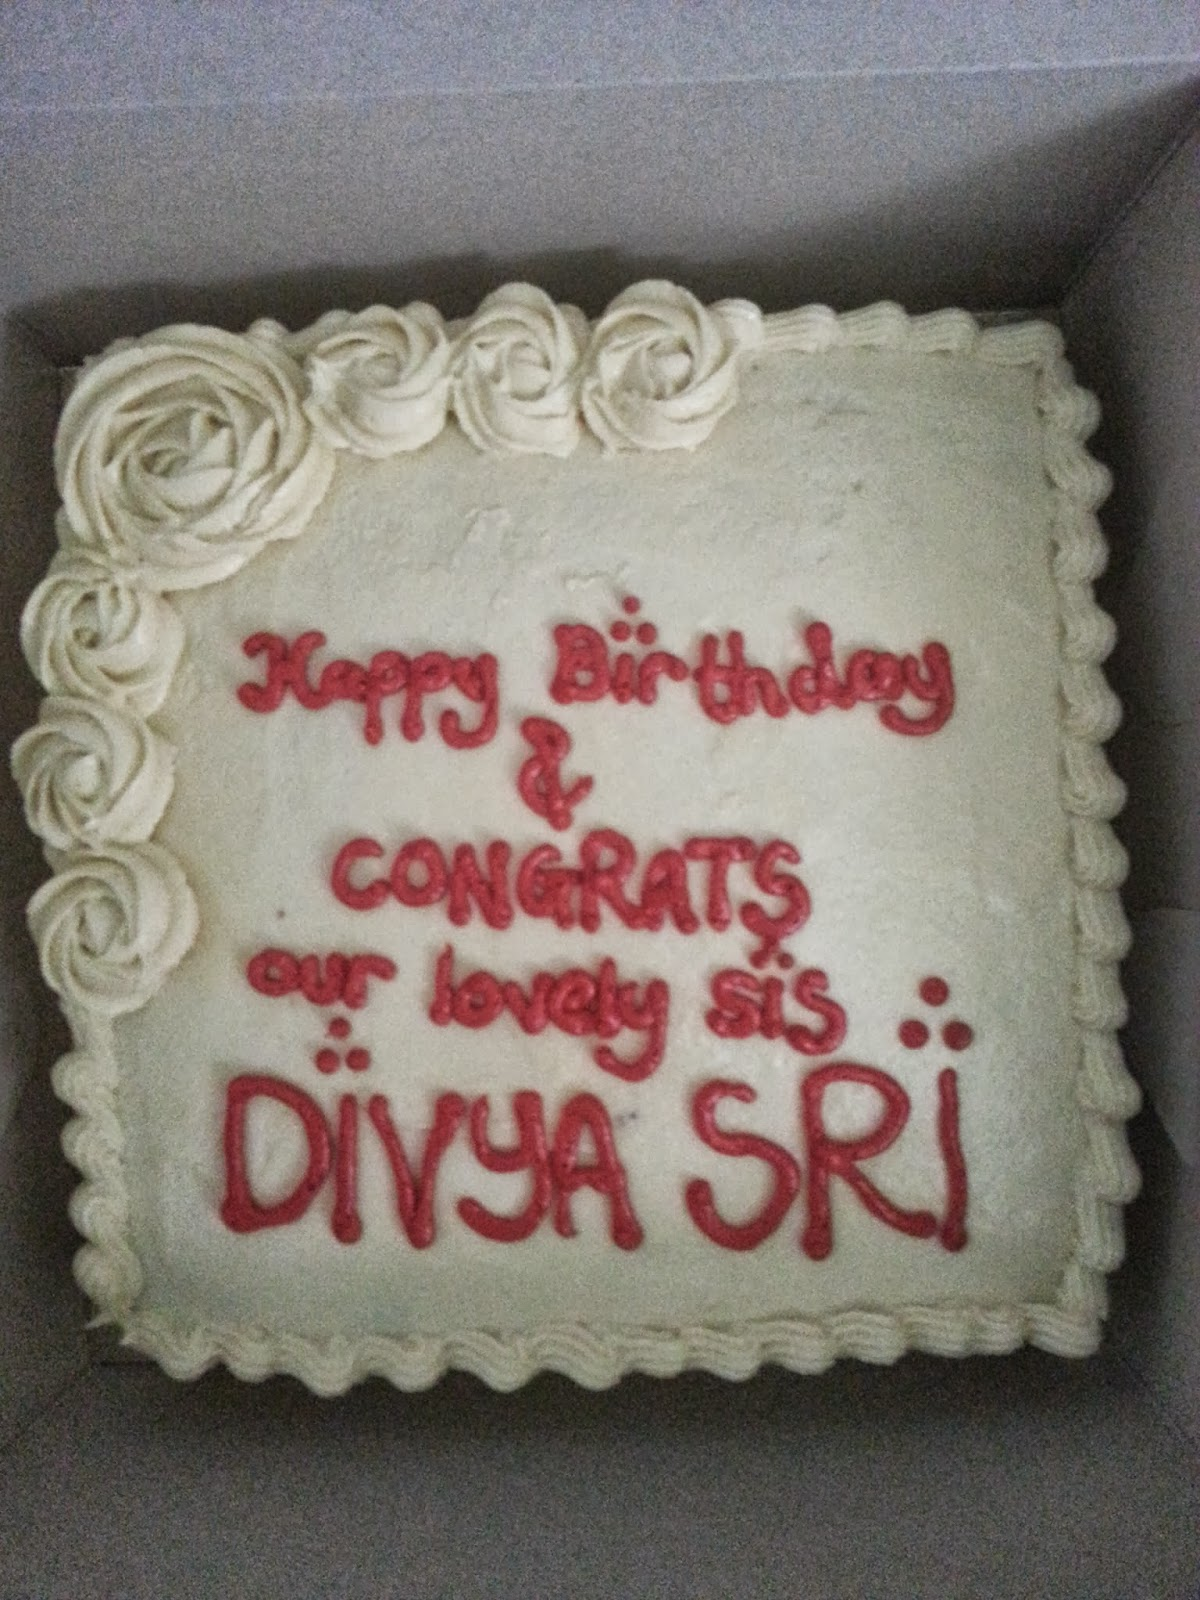 Cake Images With Name Divya : Birthday cake images with name divya